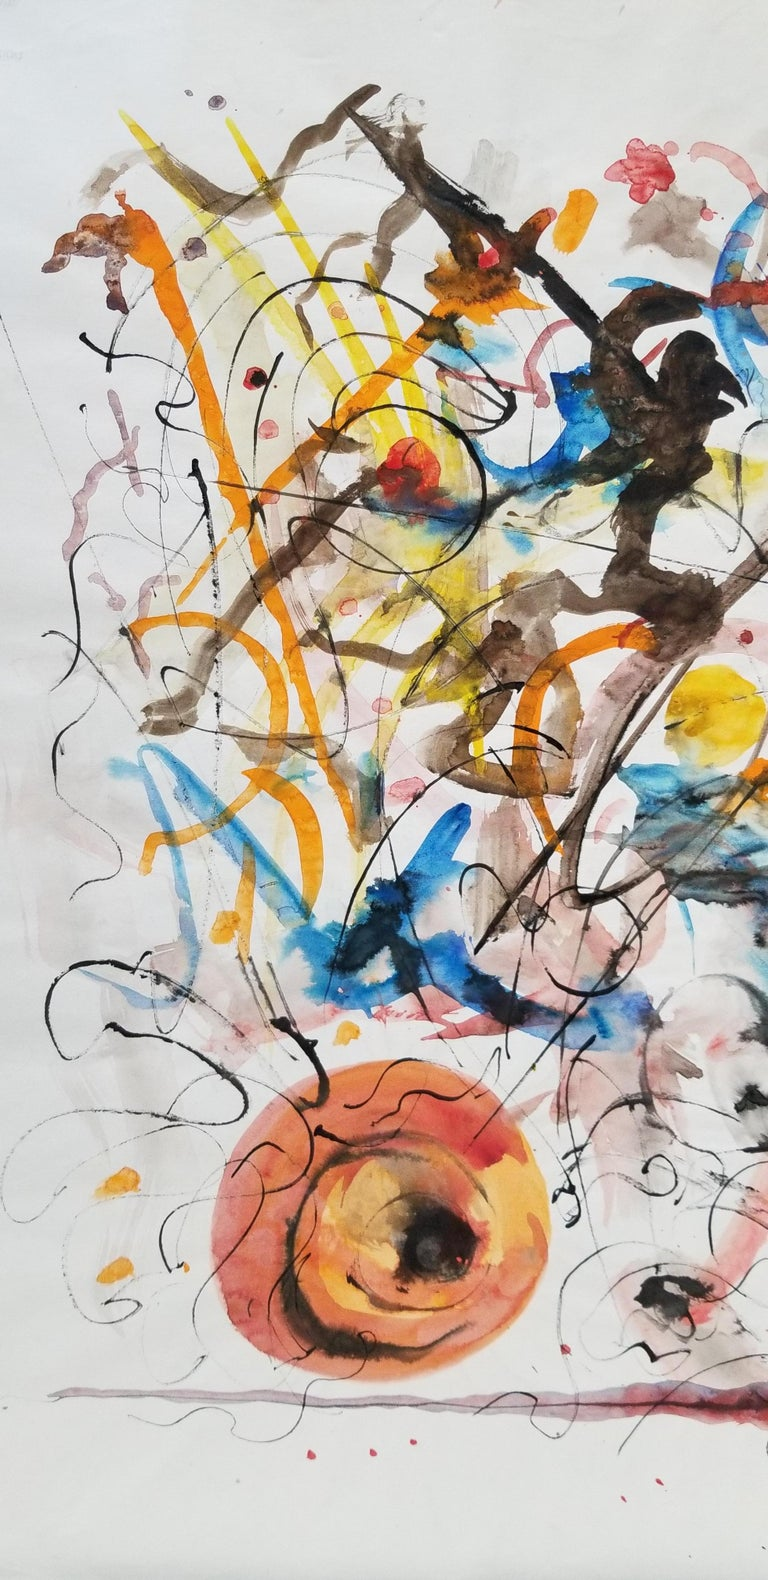 Abstract Expressionist Painting by Hendrik Grise, California In Good Condition For Sale In Fulton, CA